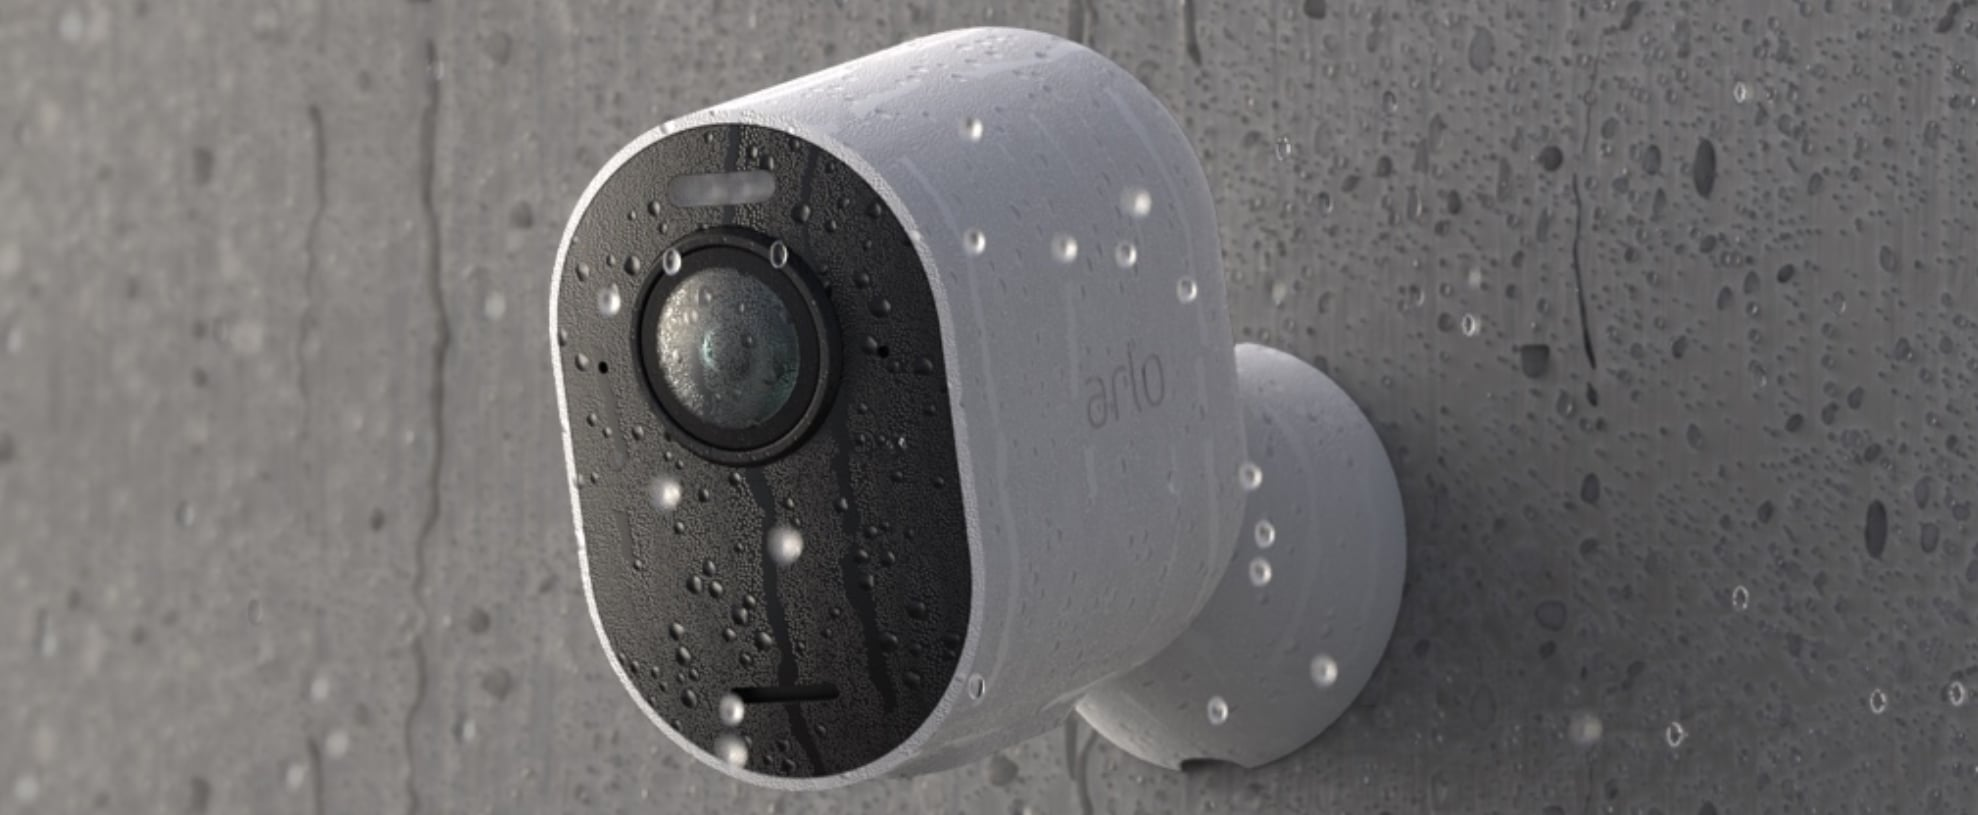 Arlo Home Security System Pro 3 and Ultra Cameras Review